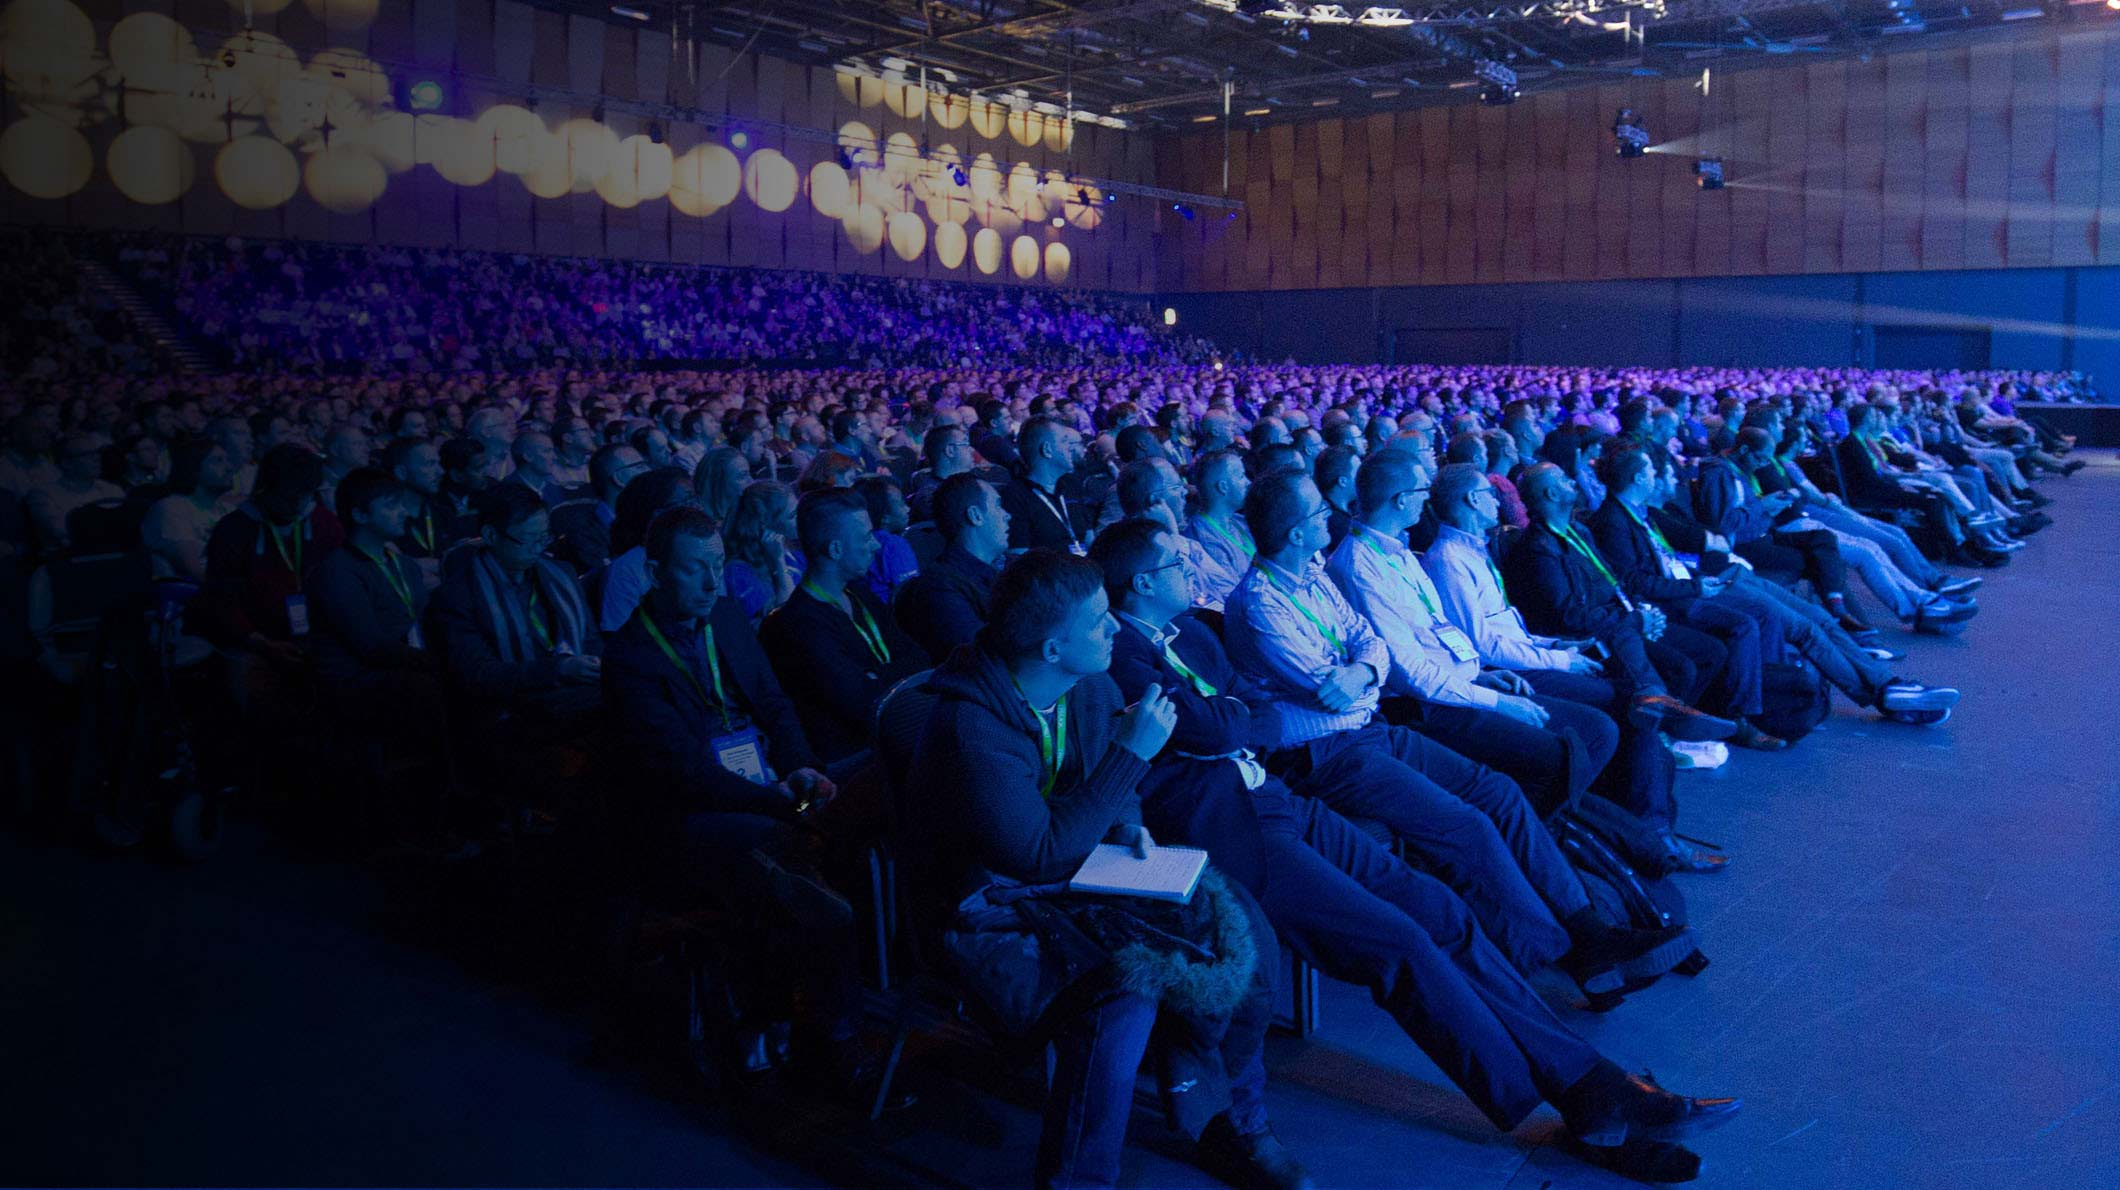 Audience watching a presentation at the Microsoft Future Decoded event